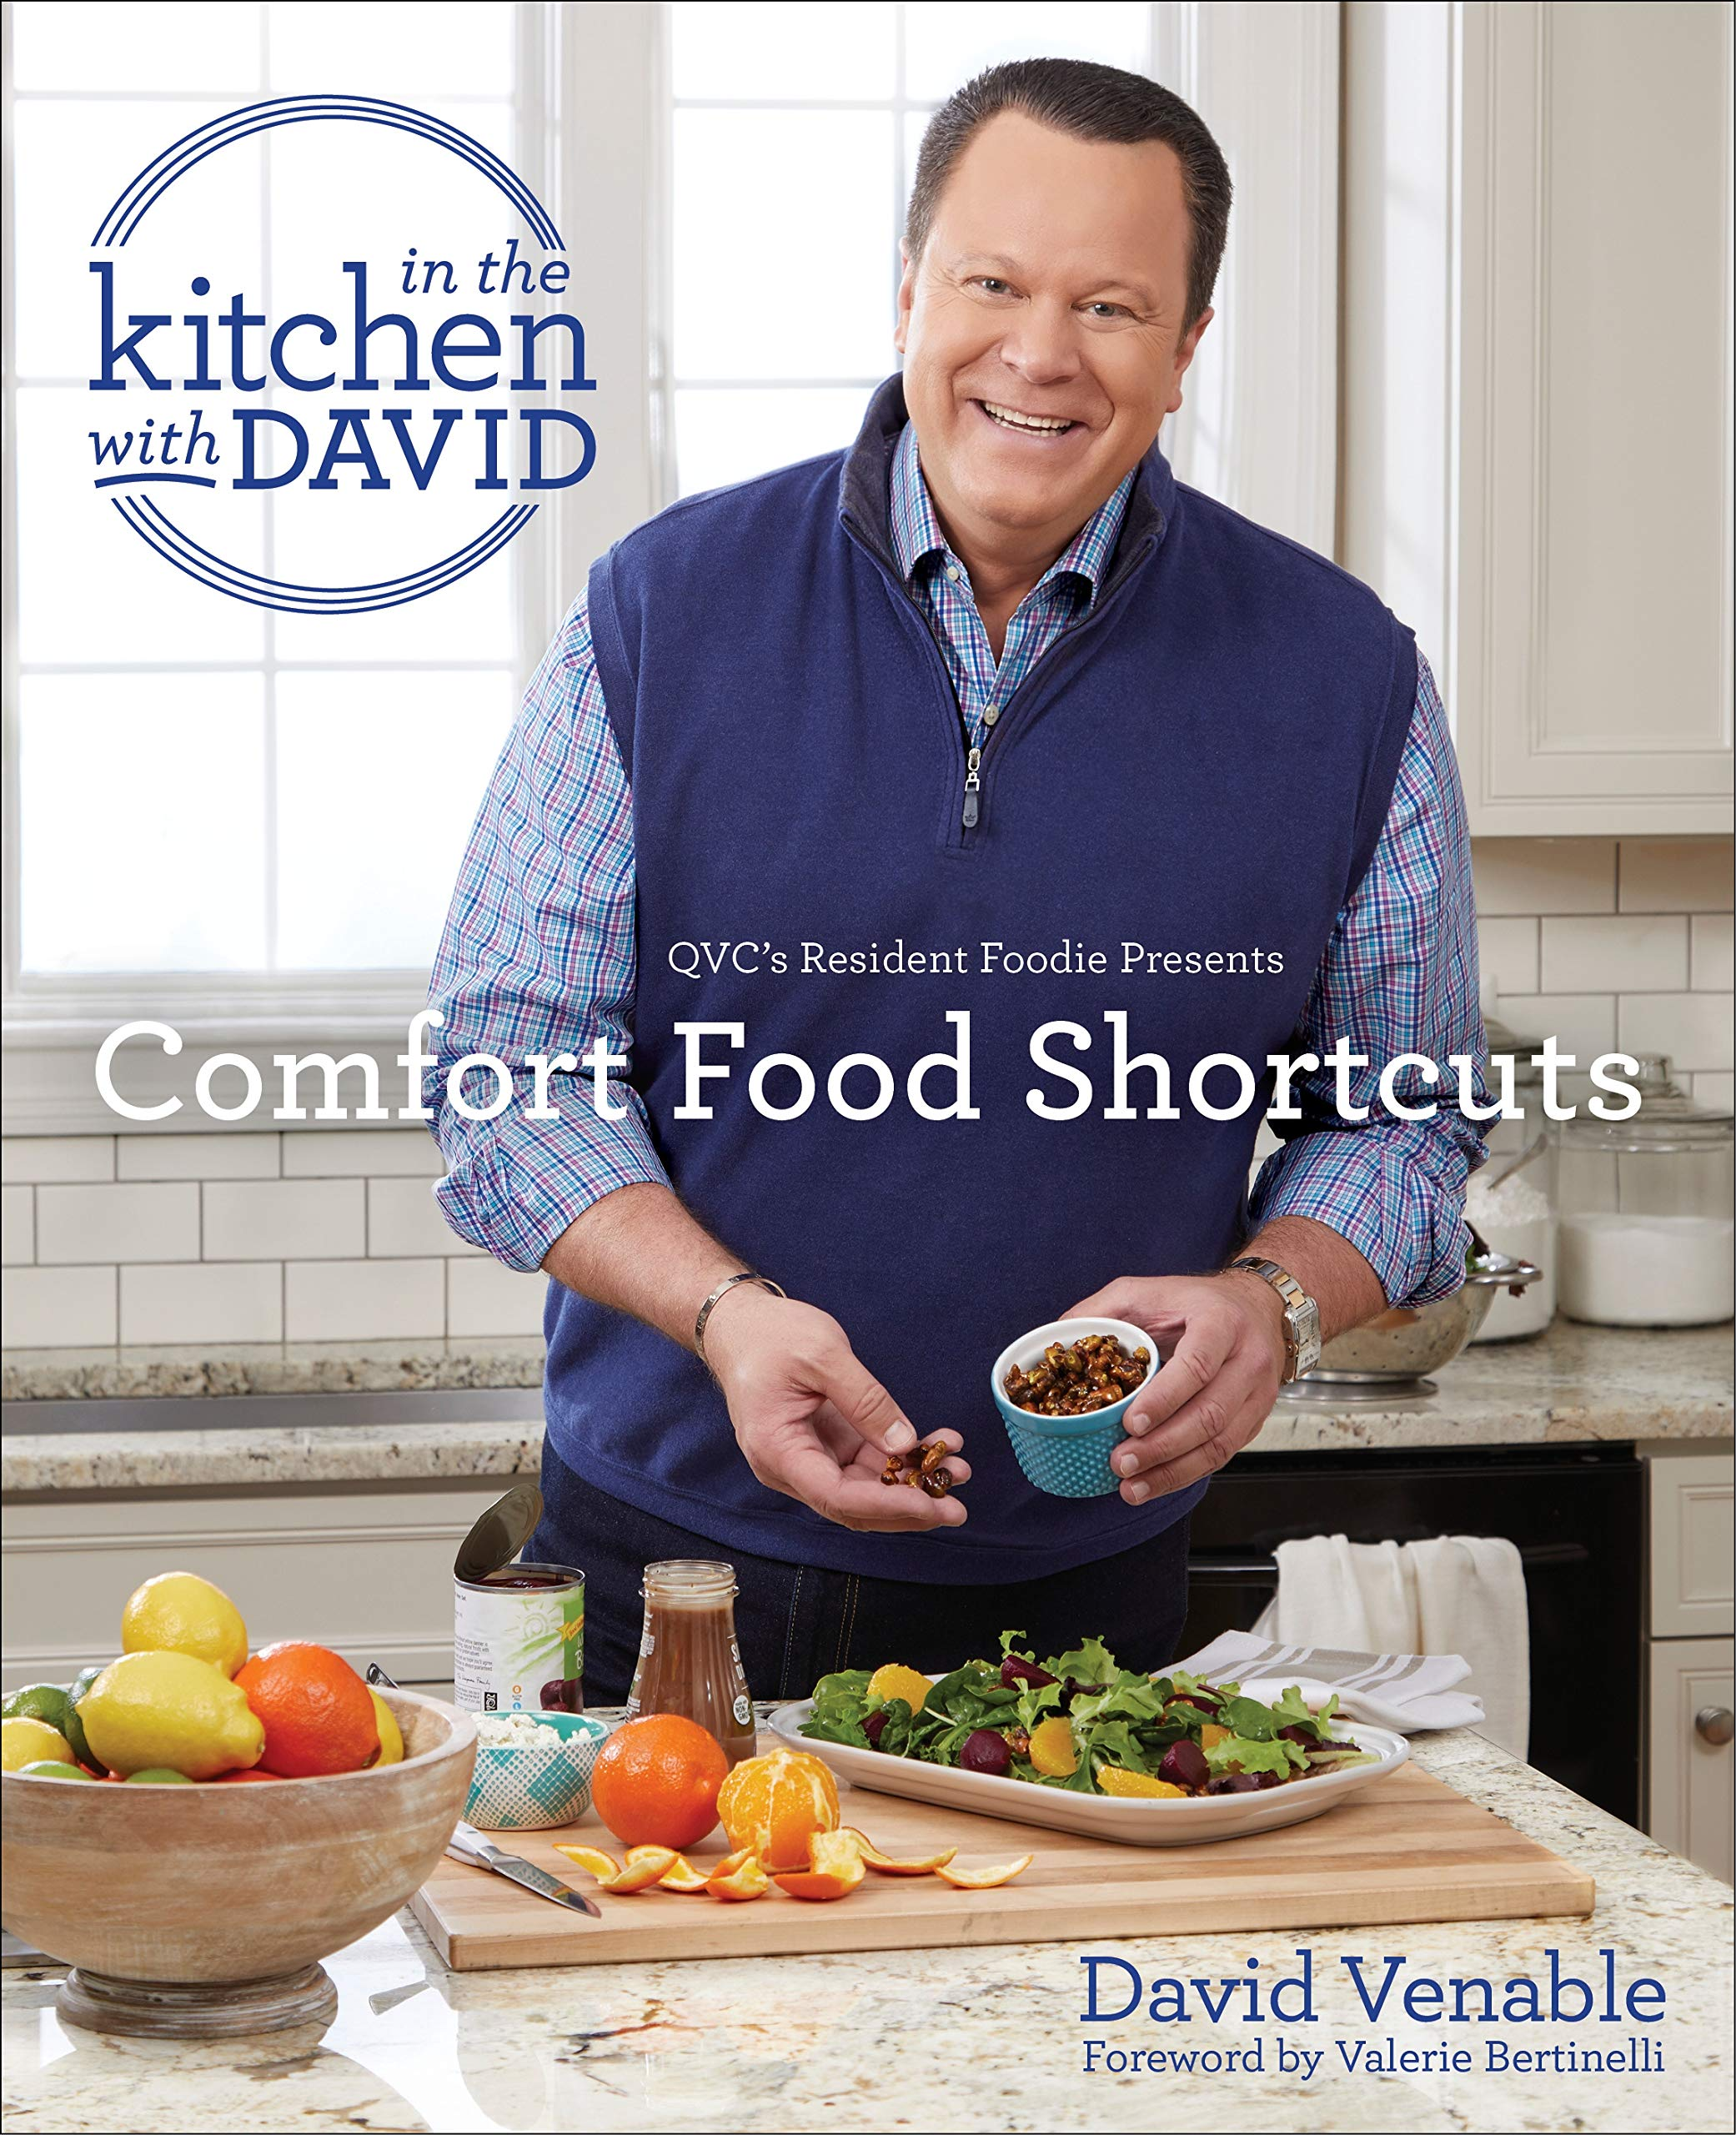 Comfort Food Shortcuts An In The Kitchen With David Cookbook From Qvc S Resident Foodie Venable David Bertinelli Valerie 9781984818294 Amazon Com Books